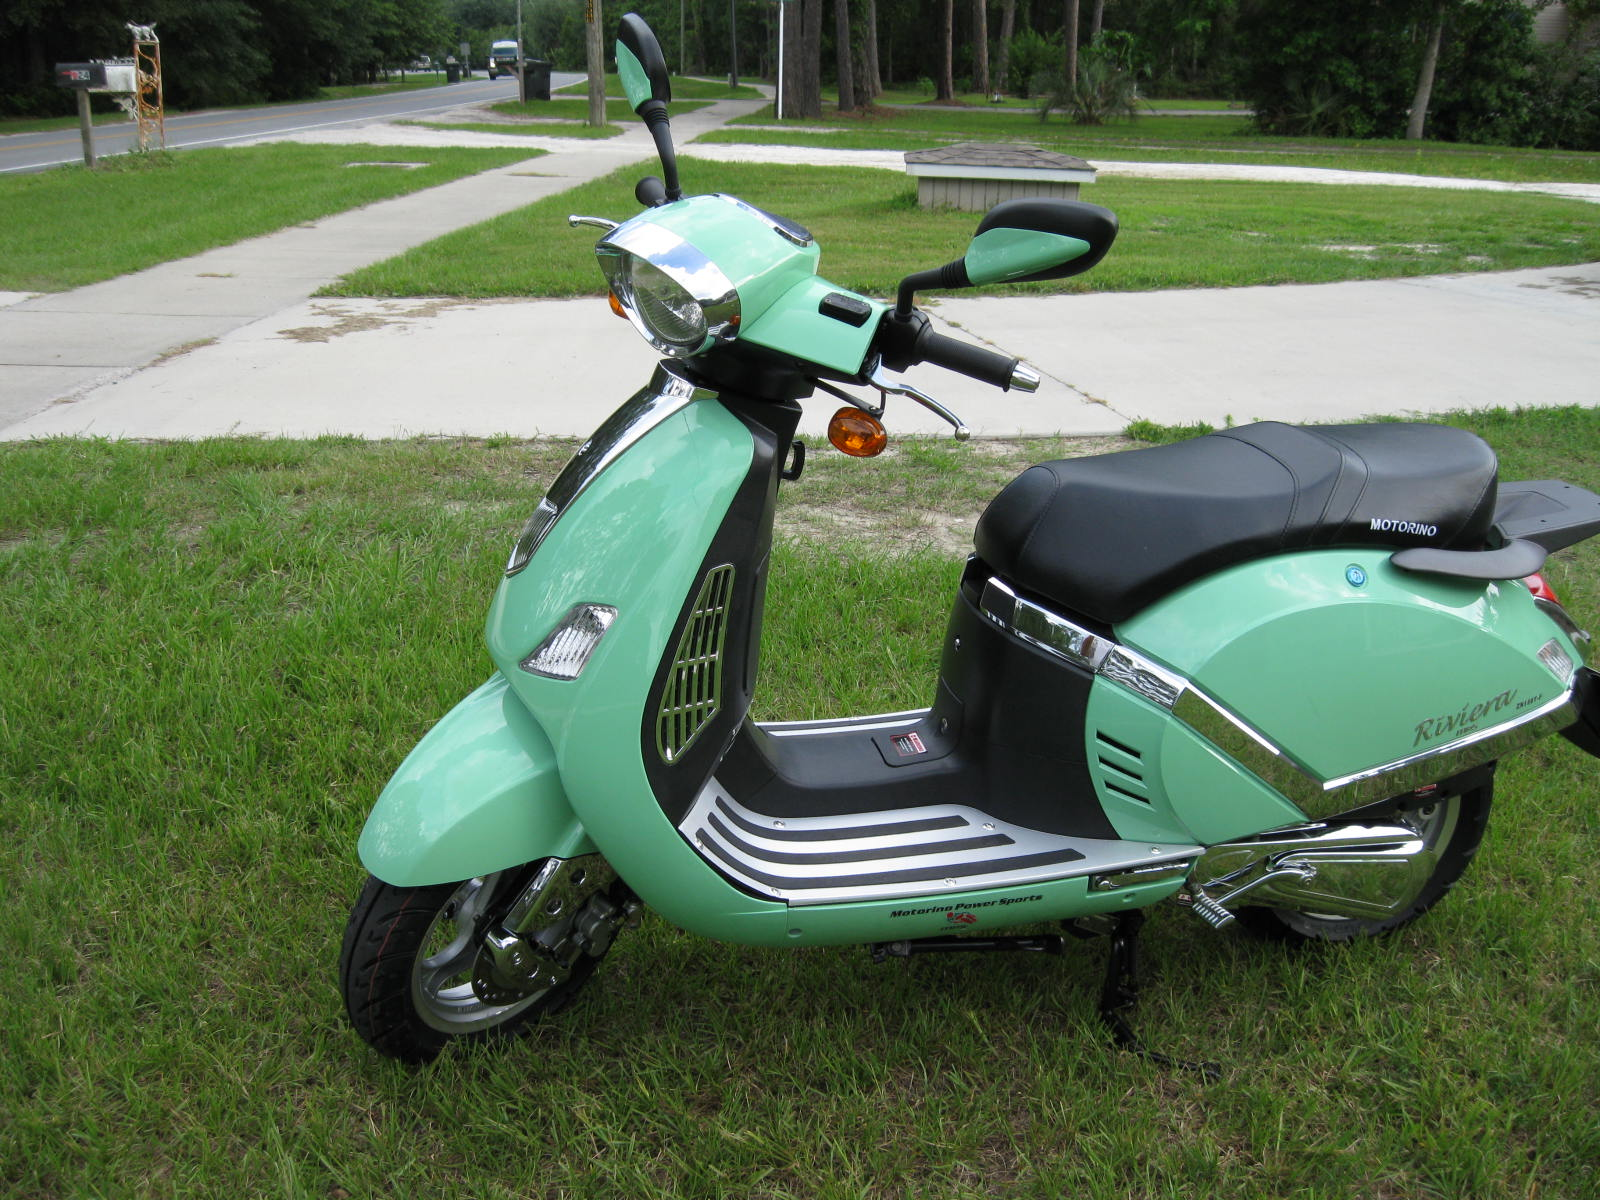 scooter, scooters, 50cc scooter,Motorino, Znen, 150cc scooter, gas